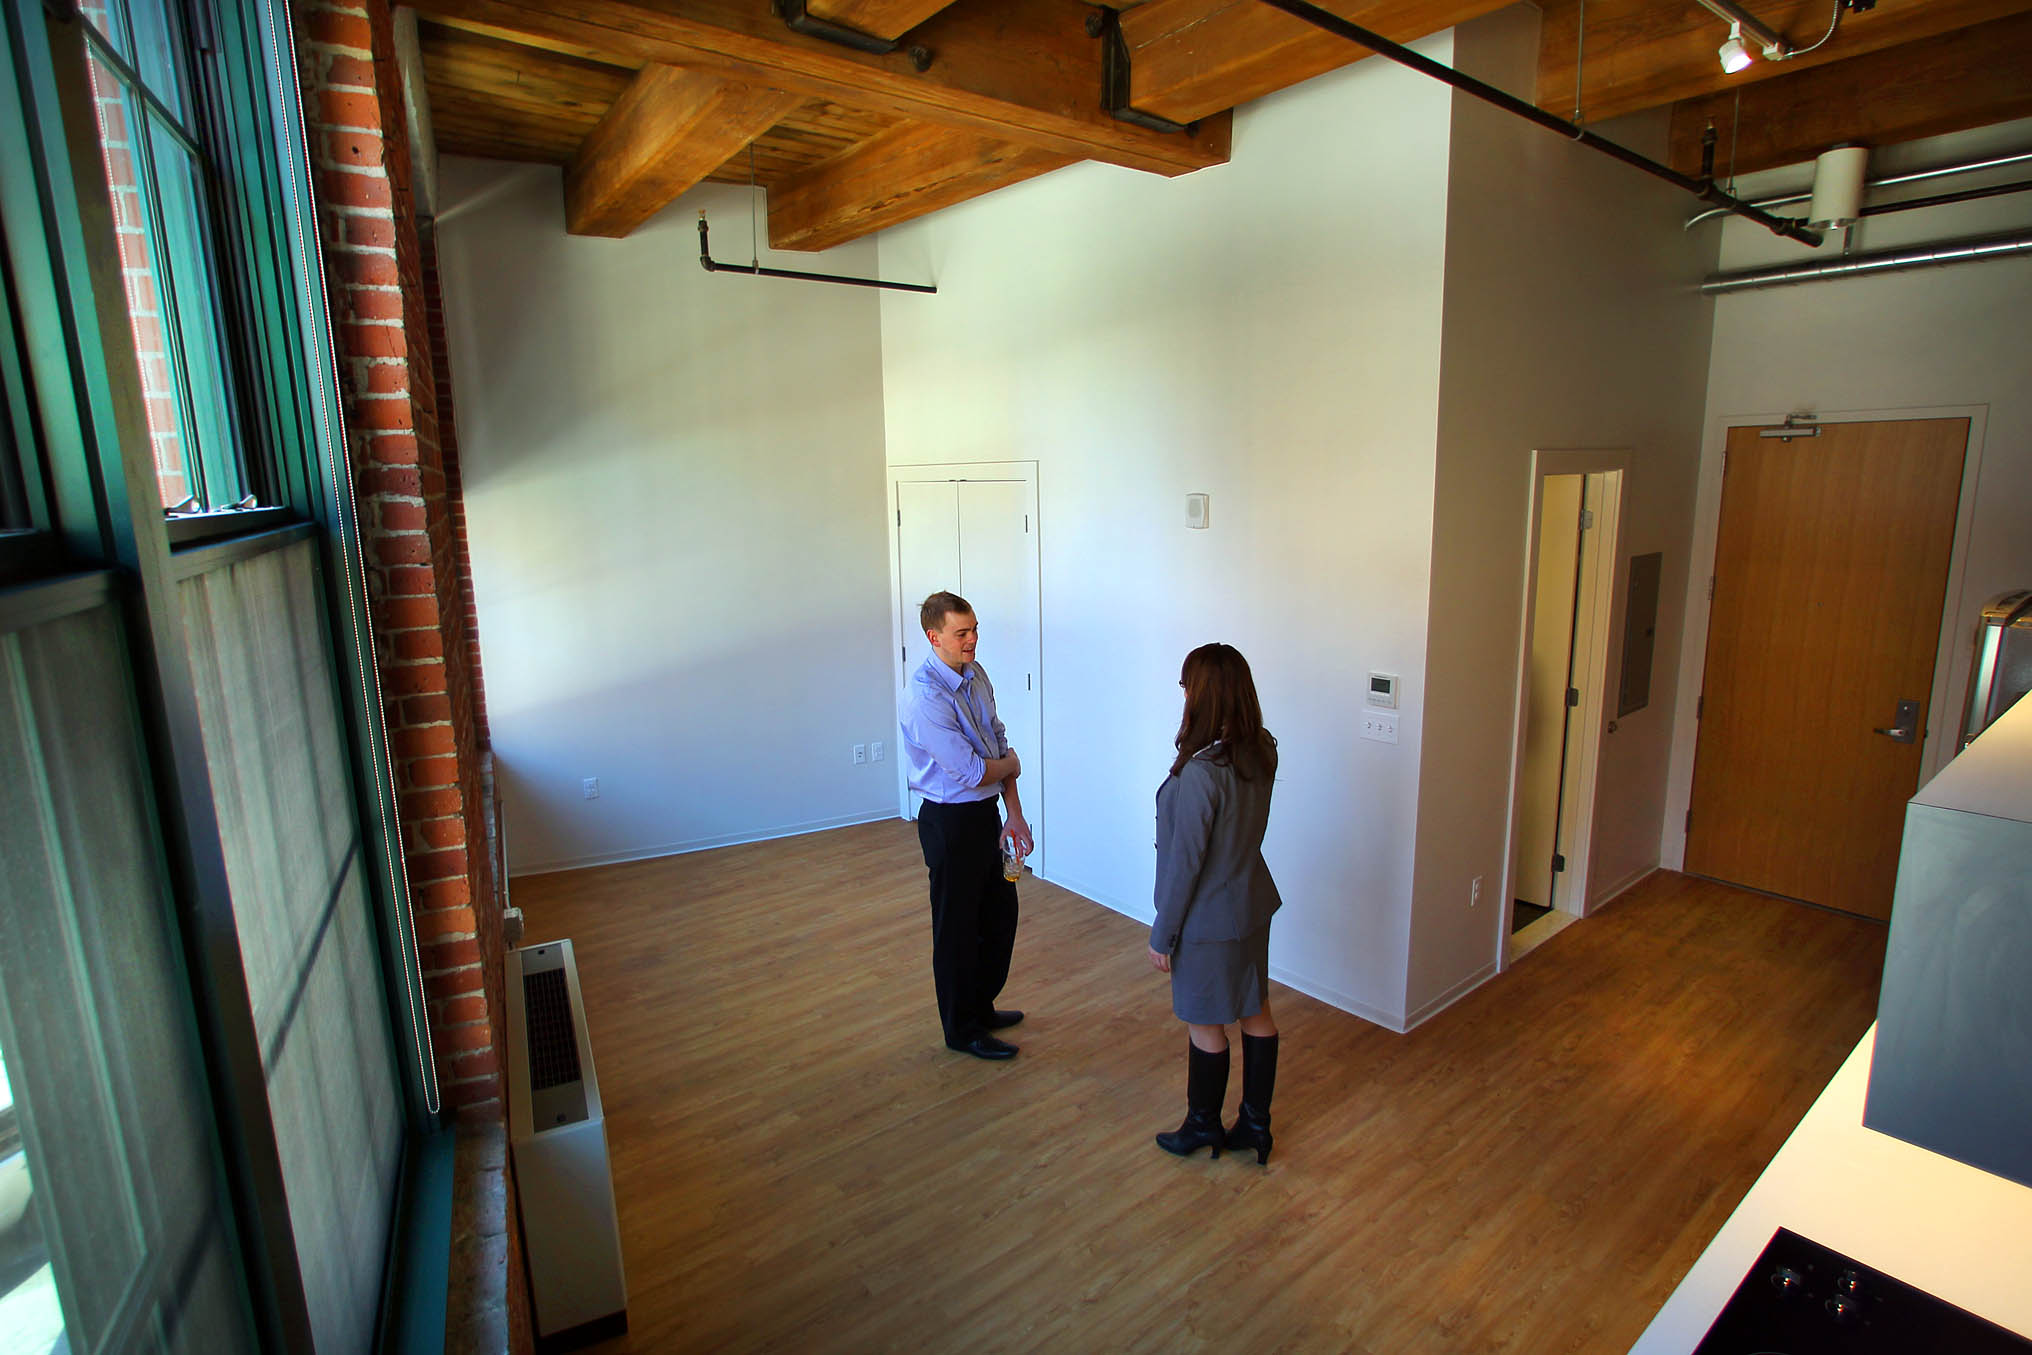 A very small and empty apartment with two people standing in the middle of it.